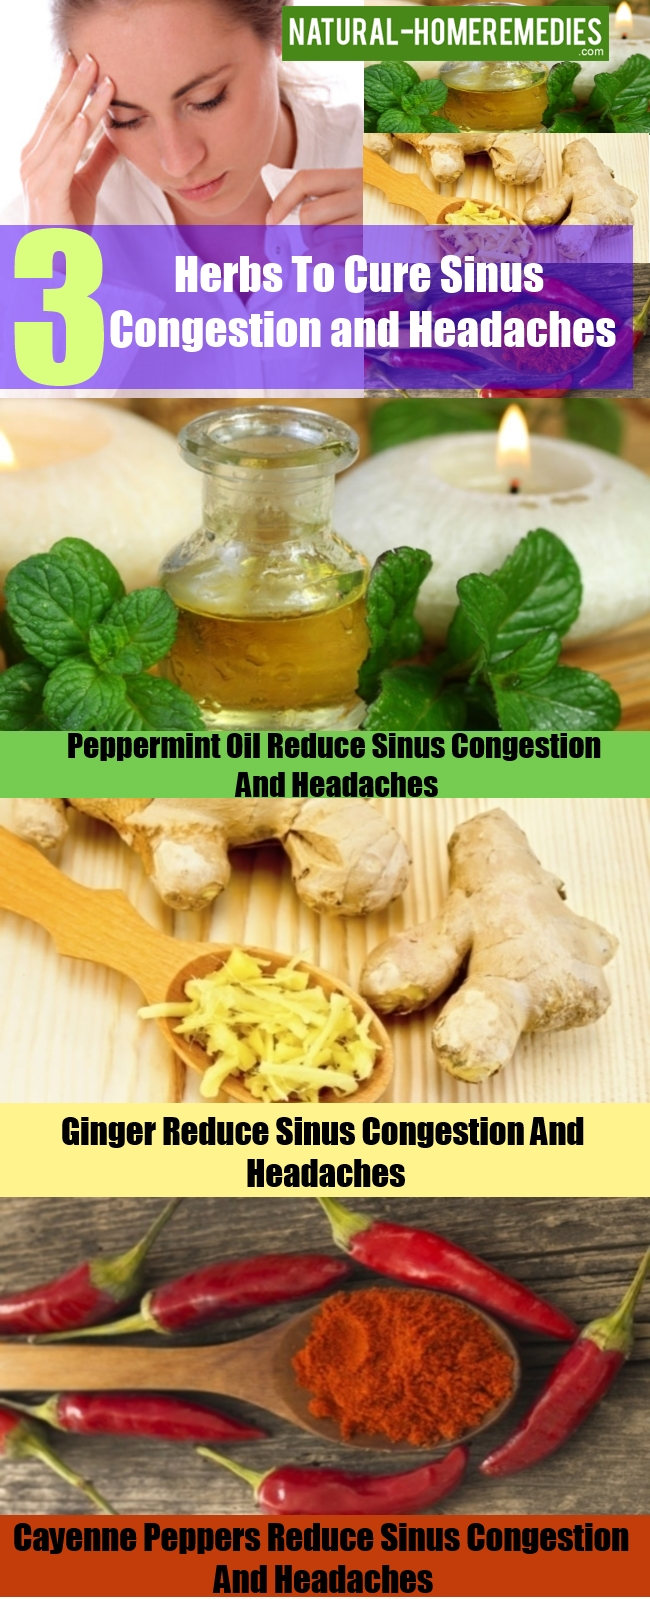 Herbs To Cure Sinus Congestion and Headaches